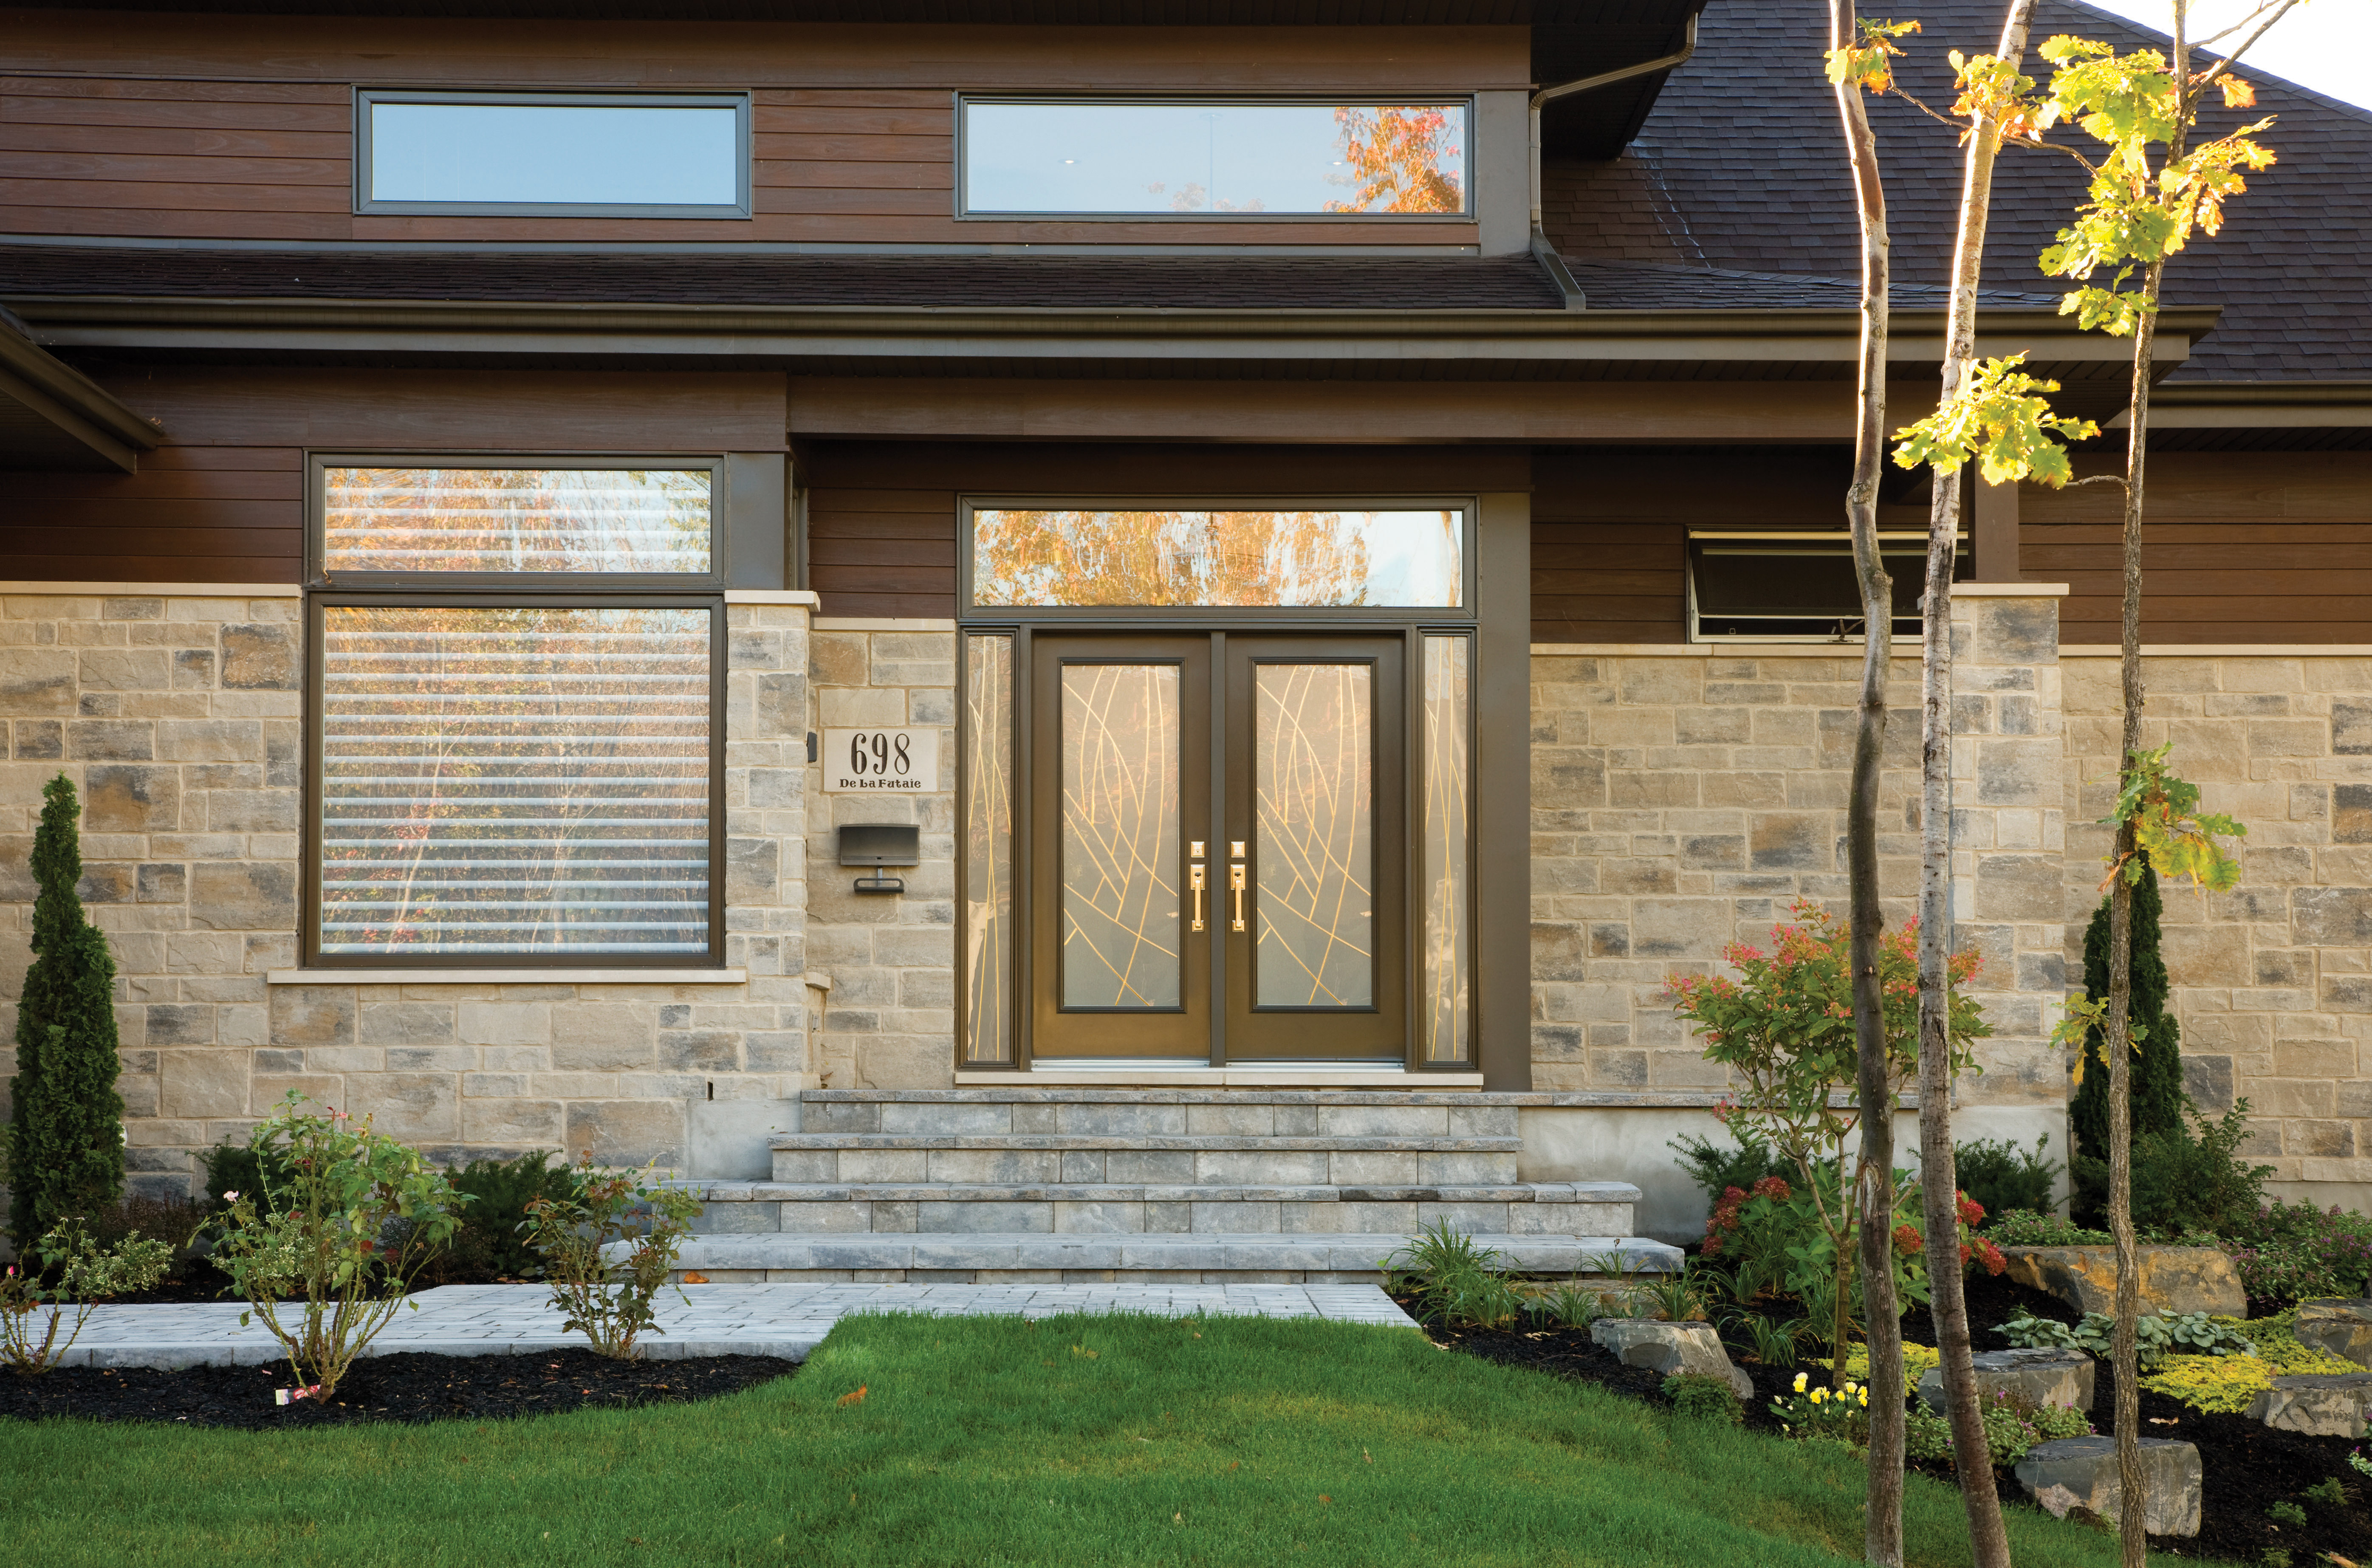 Maritime Door and Window Entrance Systems To Fit Any Size and Dimension Configuration